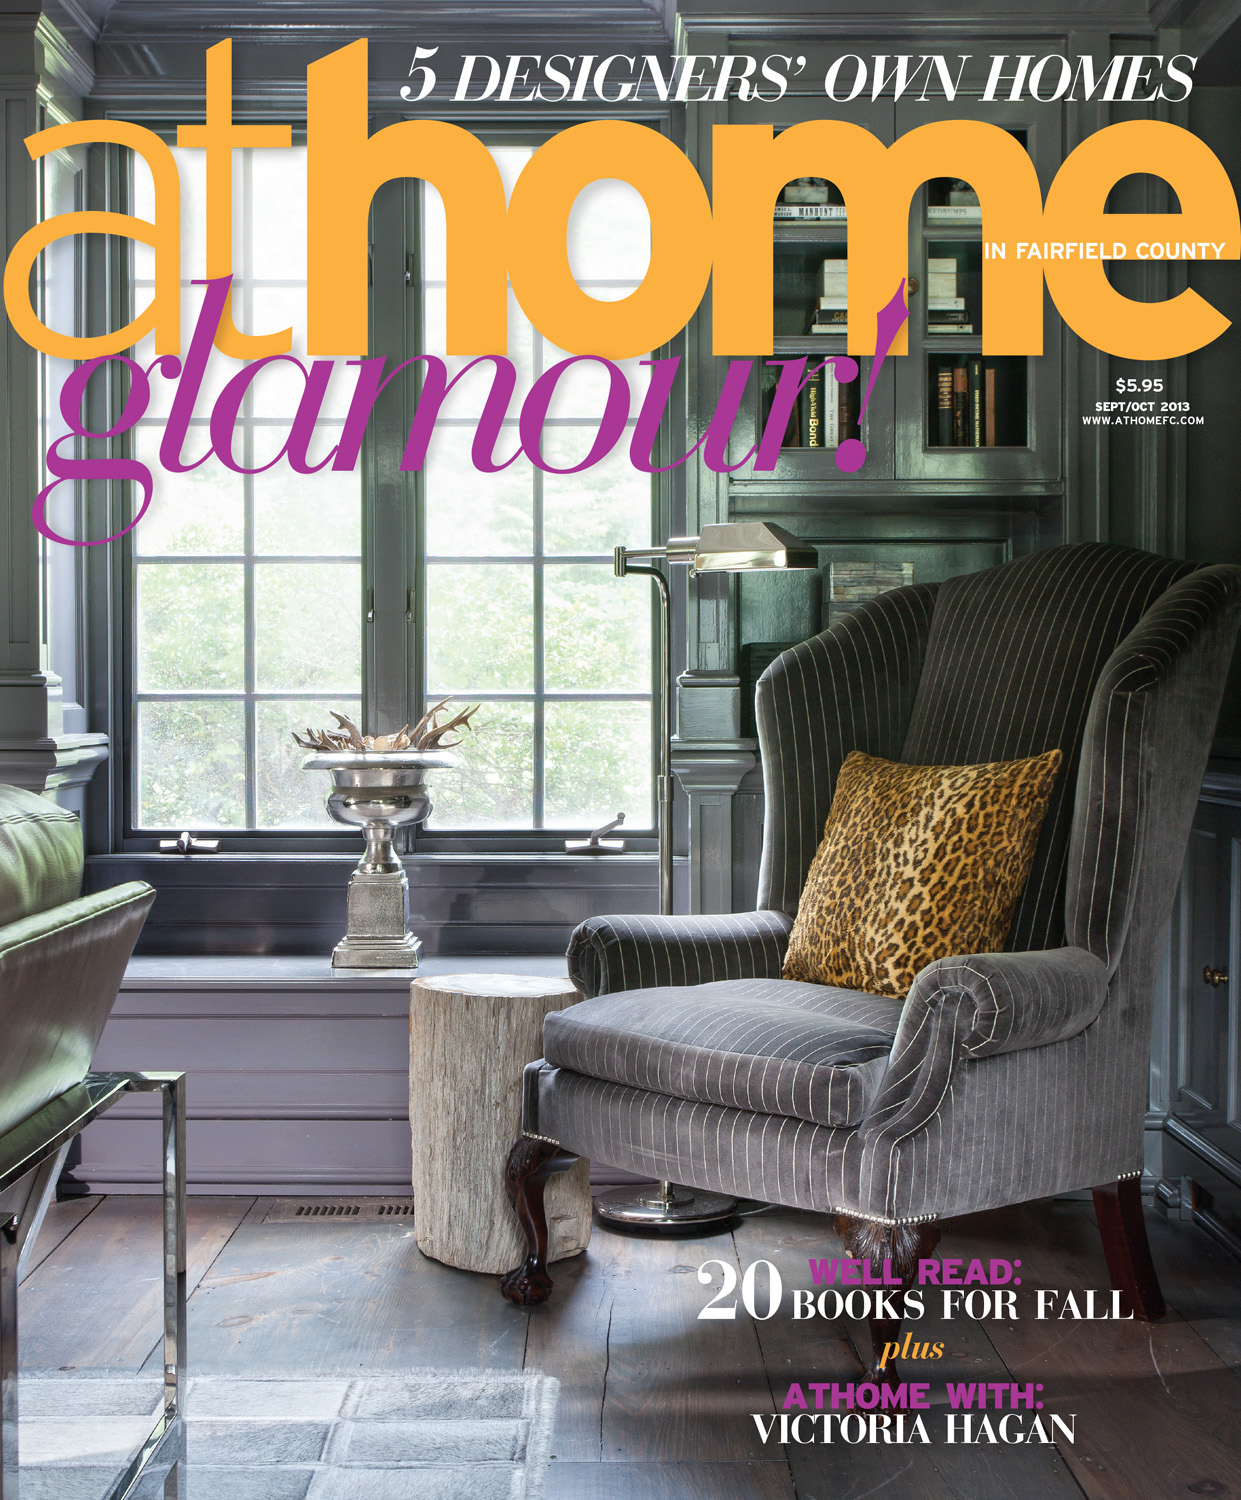 At Home magazine September/October 2014